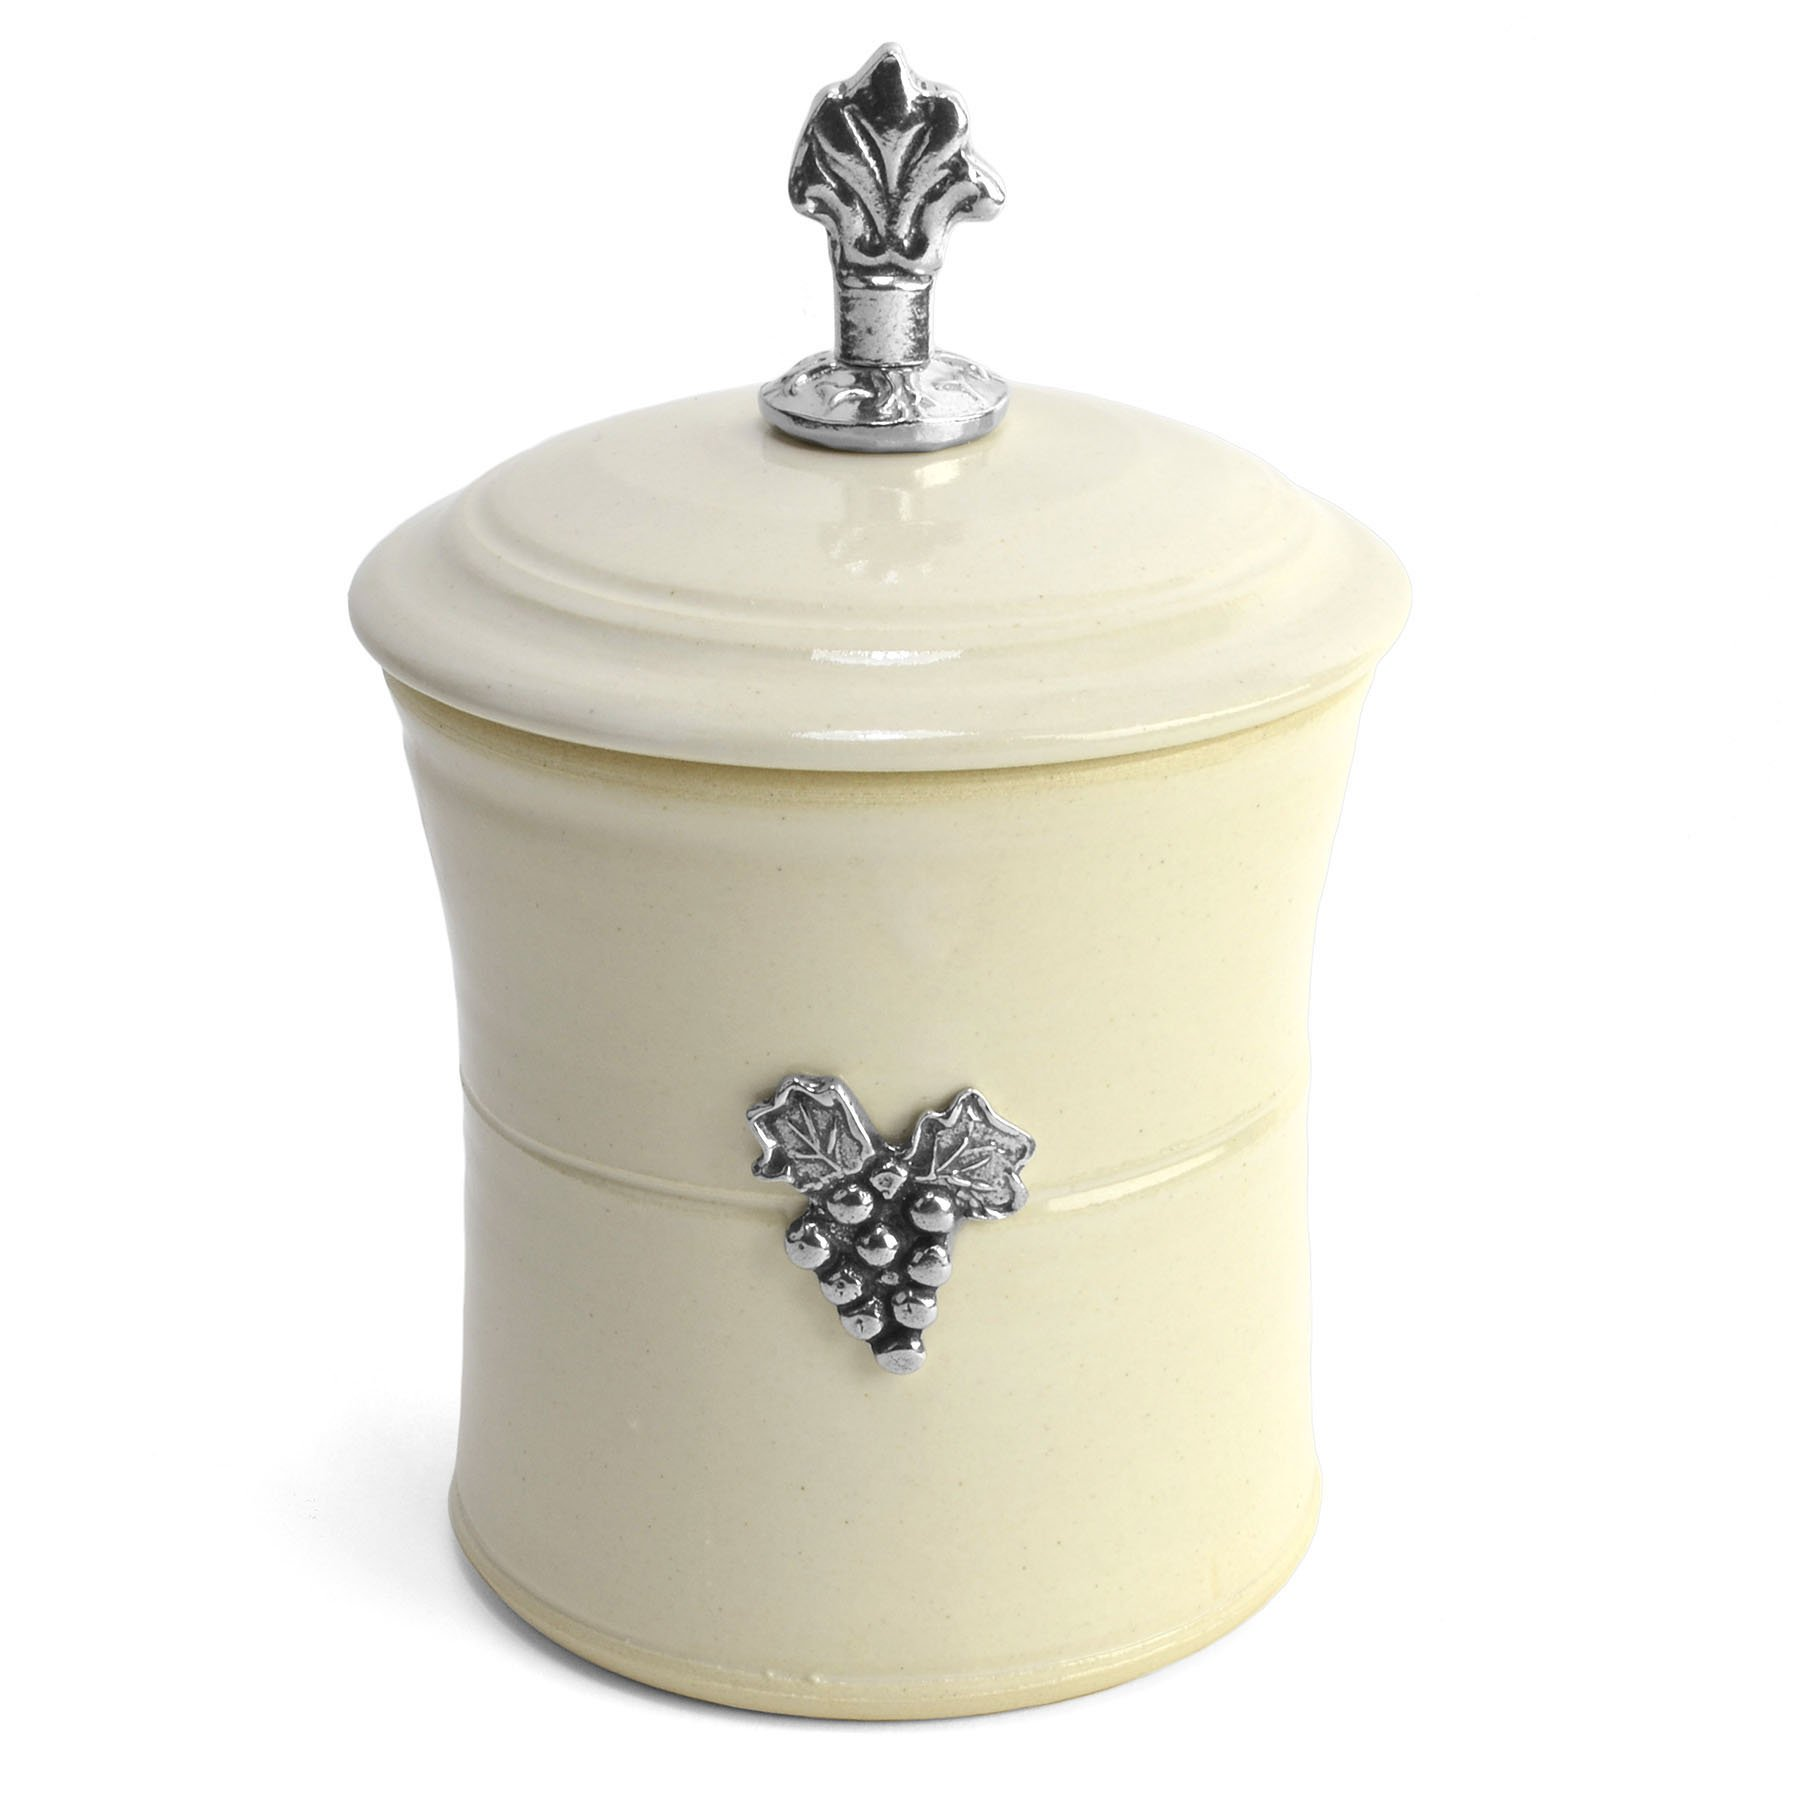 Crosby & Taylor Vineyard Garlic Pot with Pewter Finial, Whipping Cream by Crosby & Taylor